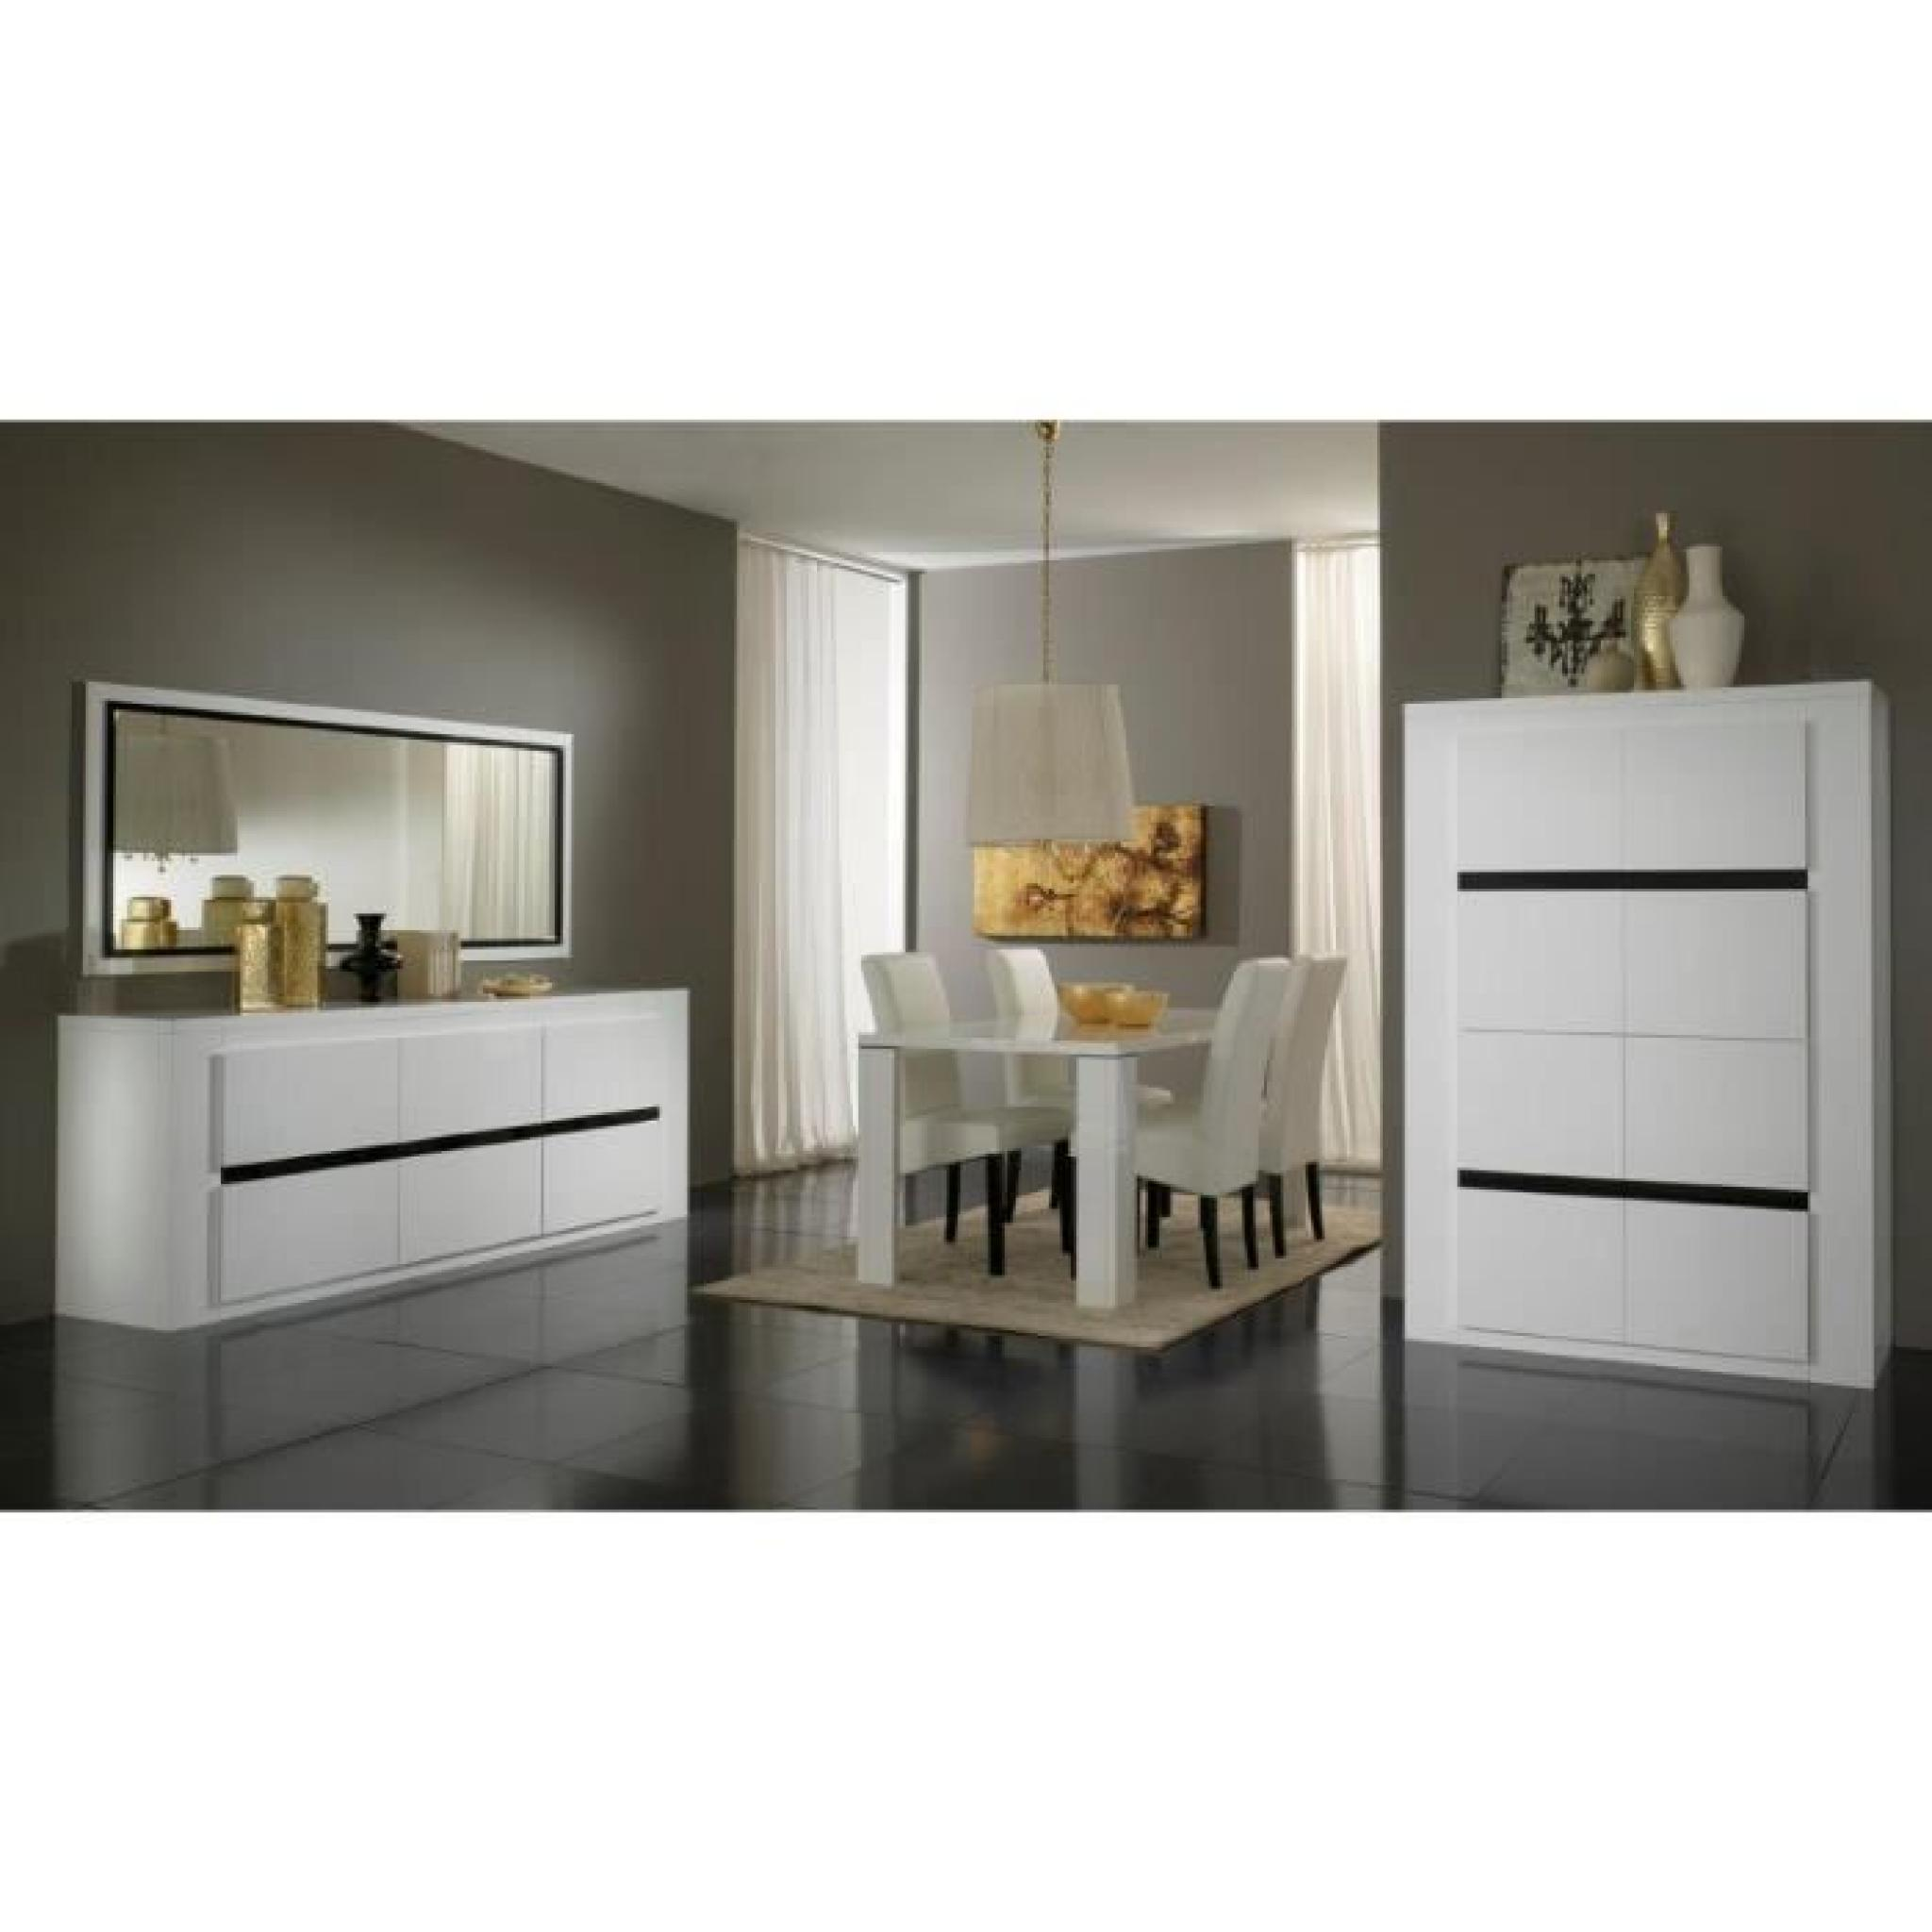 tania metal laque noire blanche ensemble complet salle a. Black Bedroom Furniture Sets. Home Design Ideas